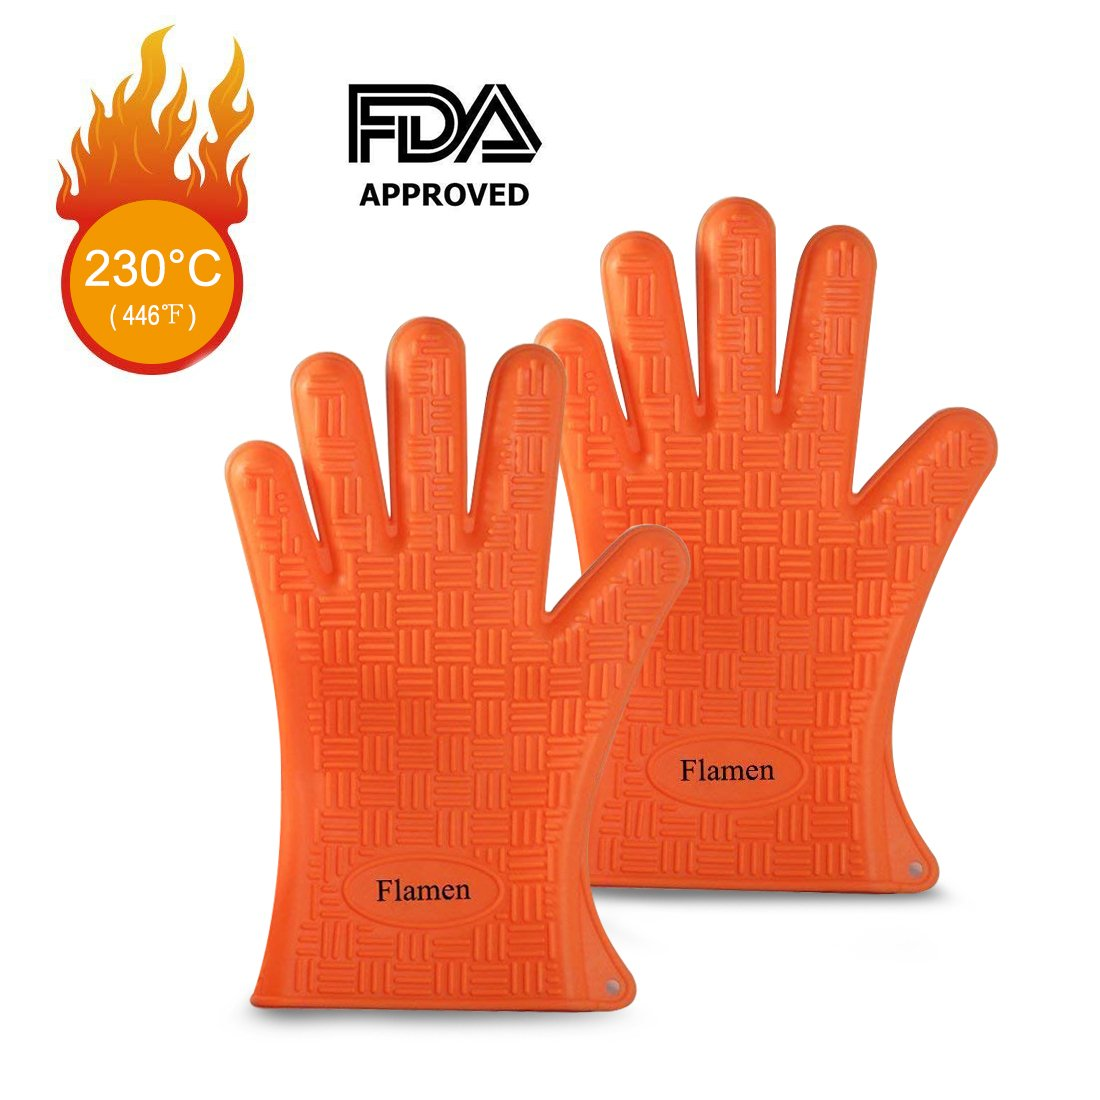 Flamen Premium Heat Resistant Glove, Silicone Cooking Glove for BBQ, Grilling, Baking, Boiling Water Proof, Dishwasher Safe, Heat Resistant Insulated at 446 F (1 Pair) Aspectek HG1901